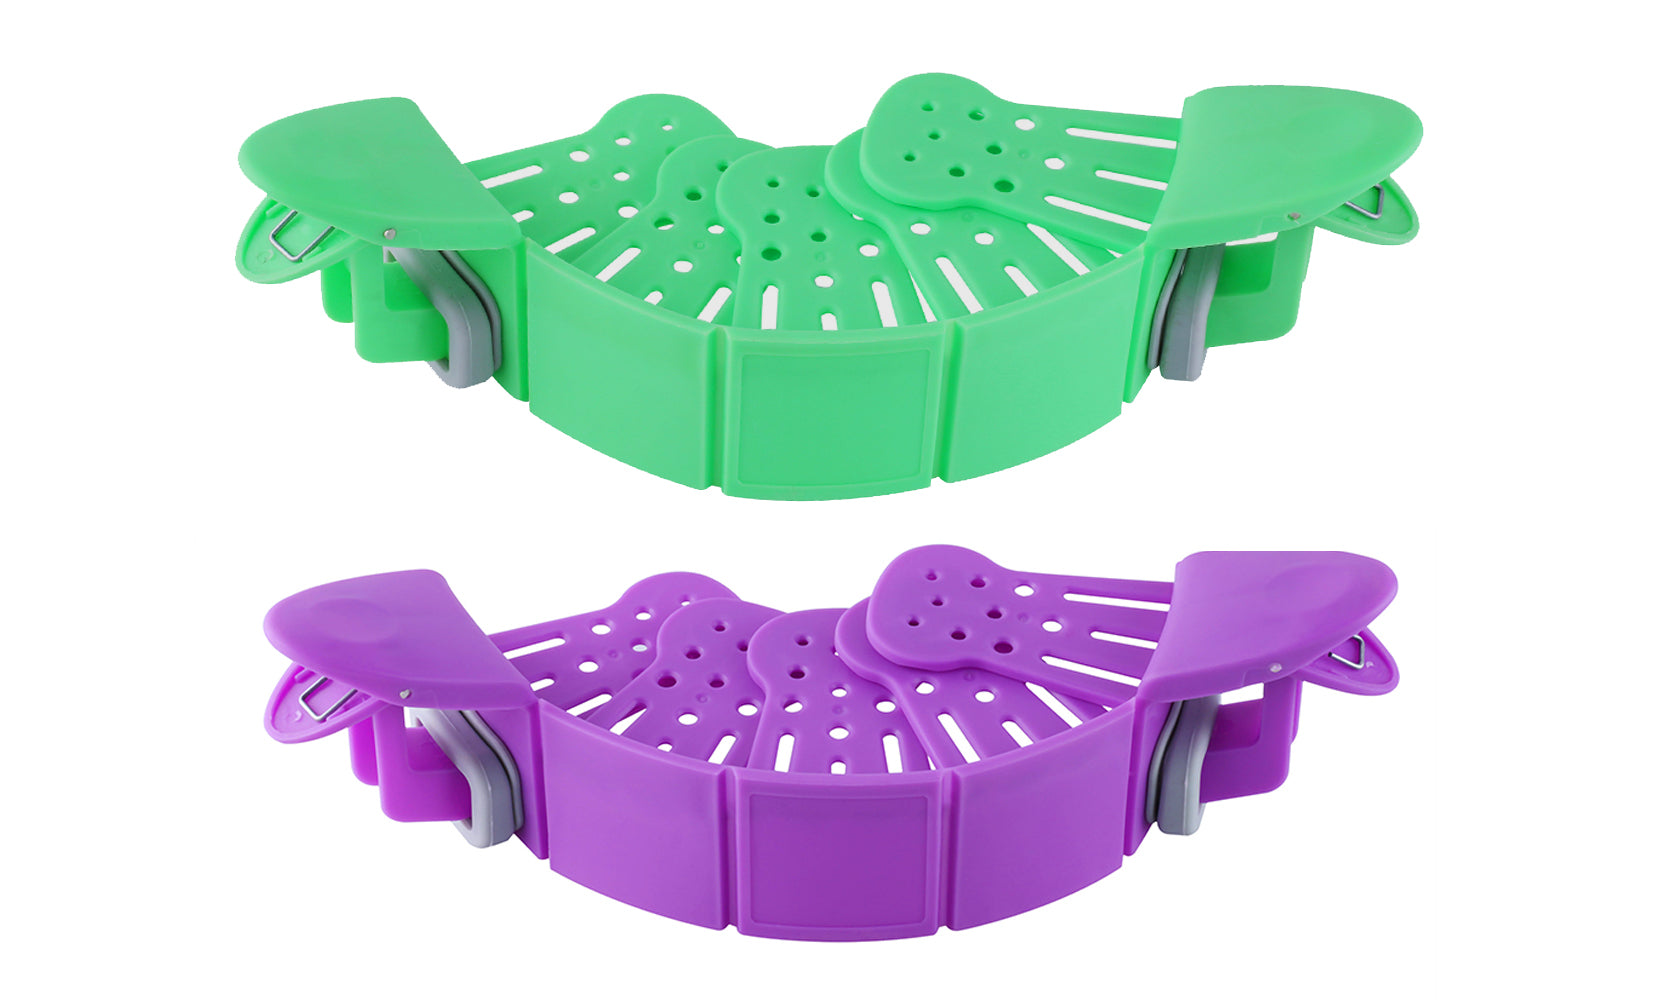 Hands-Free Heat Resistance Silicone Easy Clip On Strainer and Colander